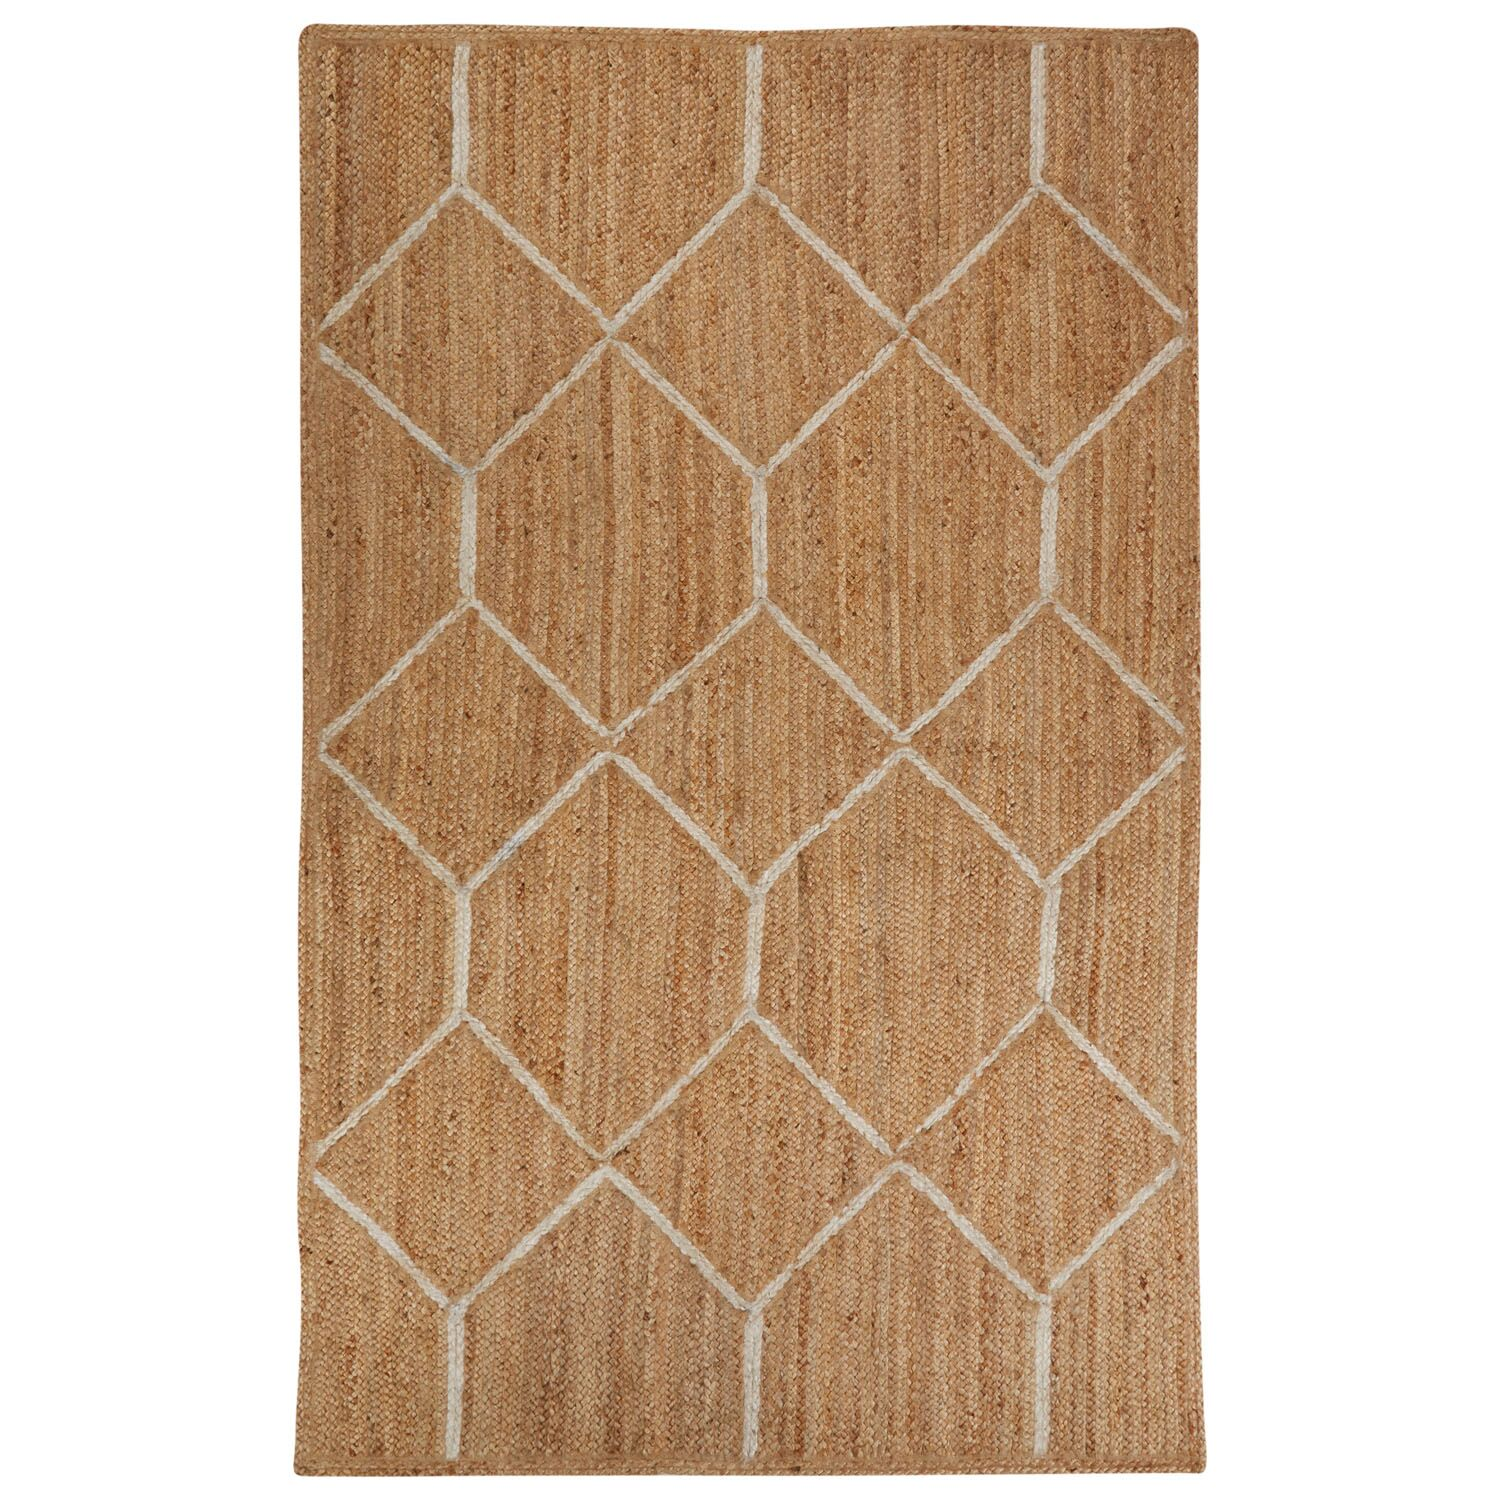 Subra Natural/Ivory Area Rug Rug Size: Rectangle 5' x 8'